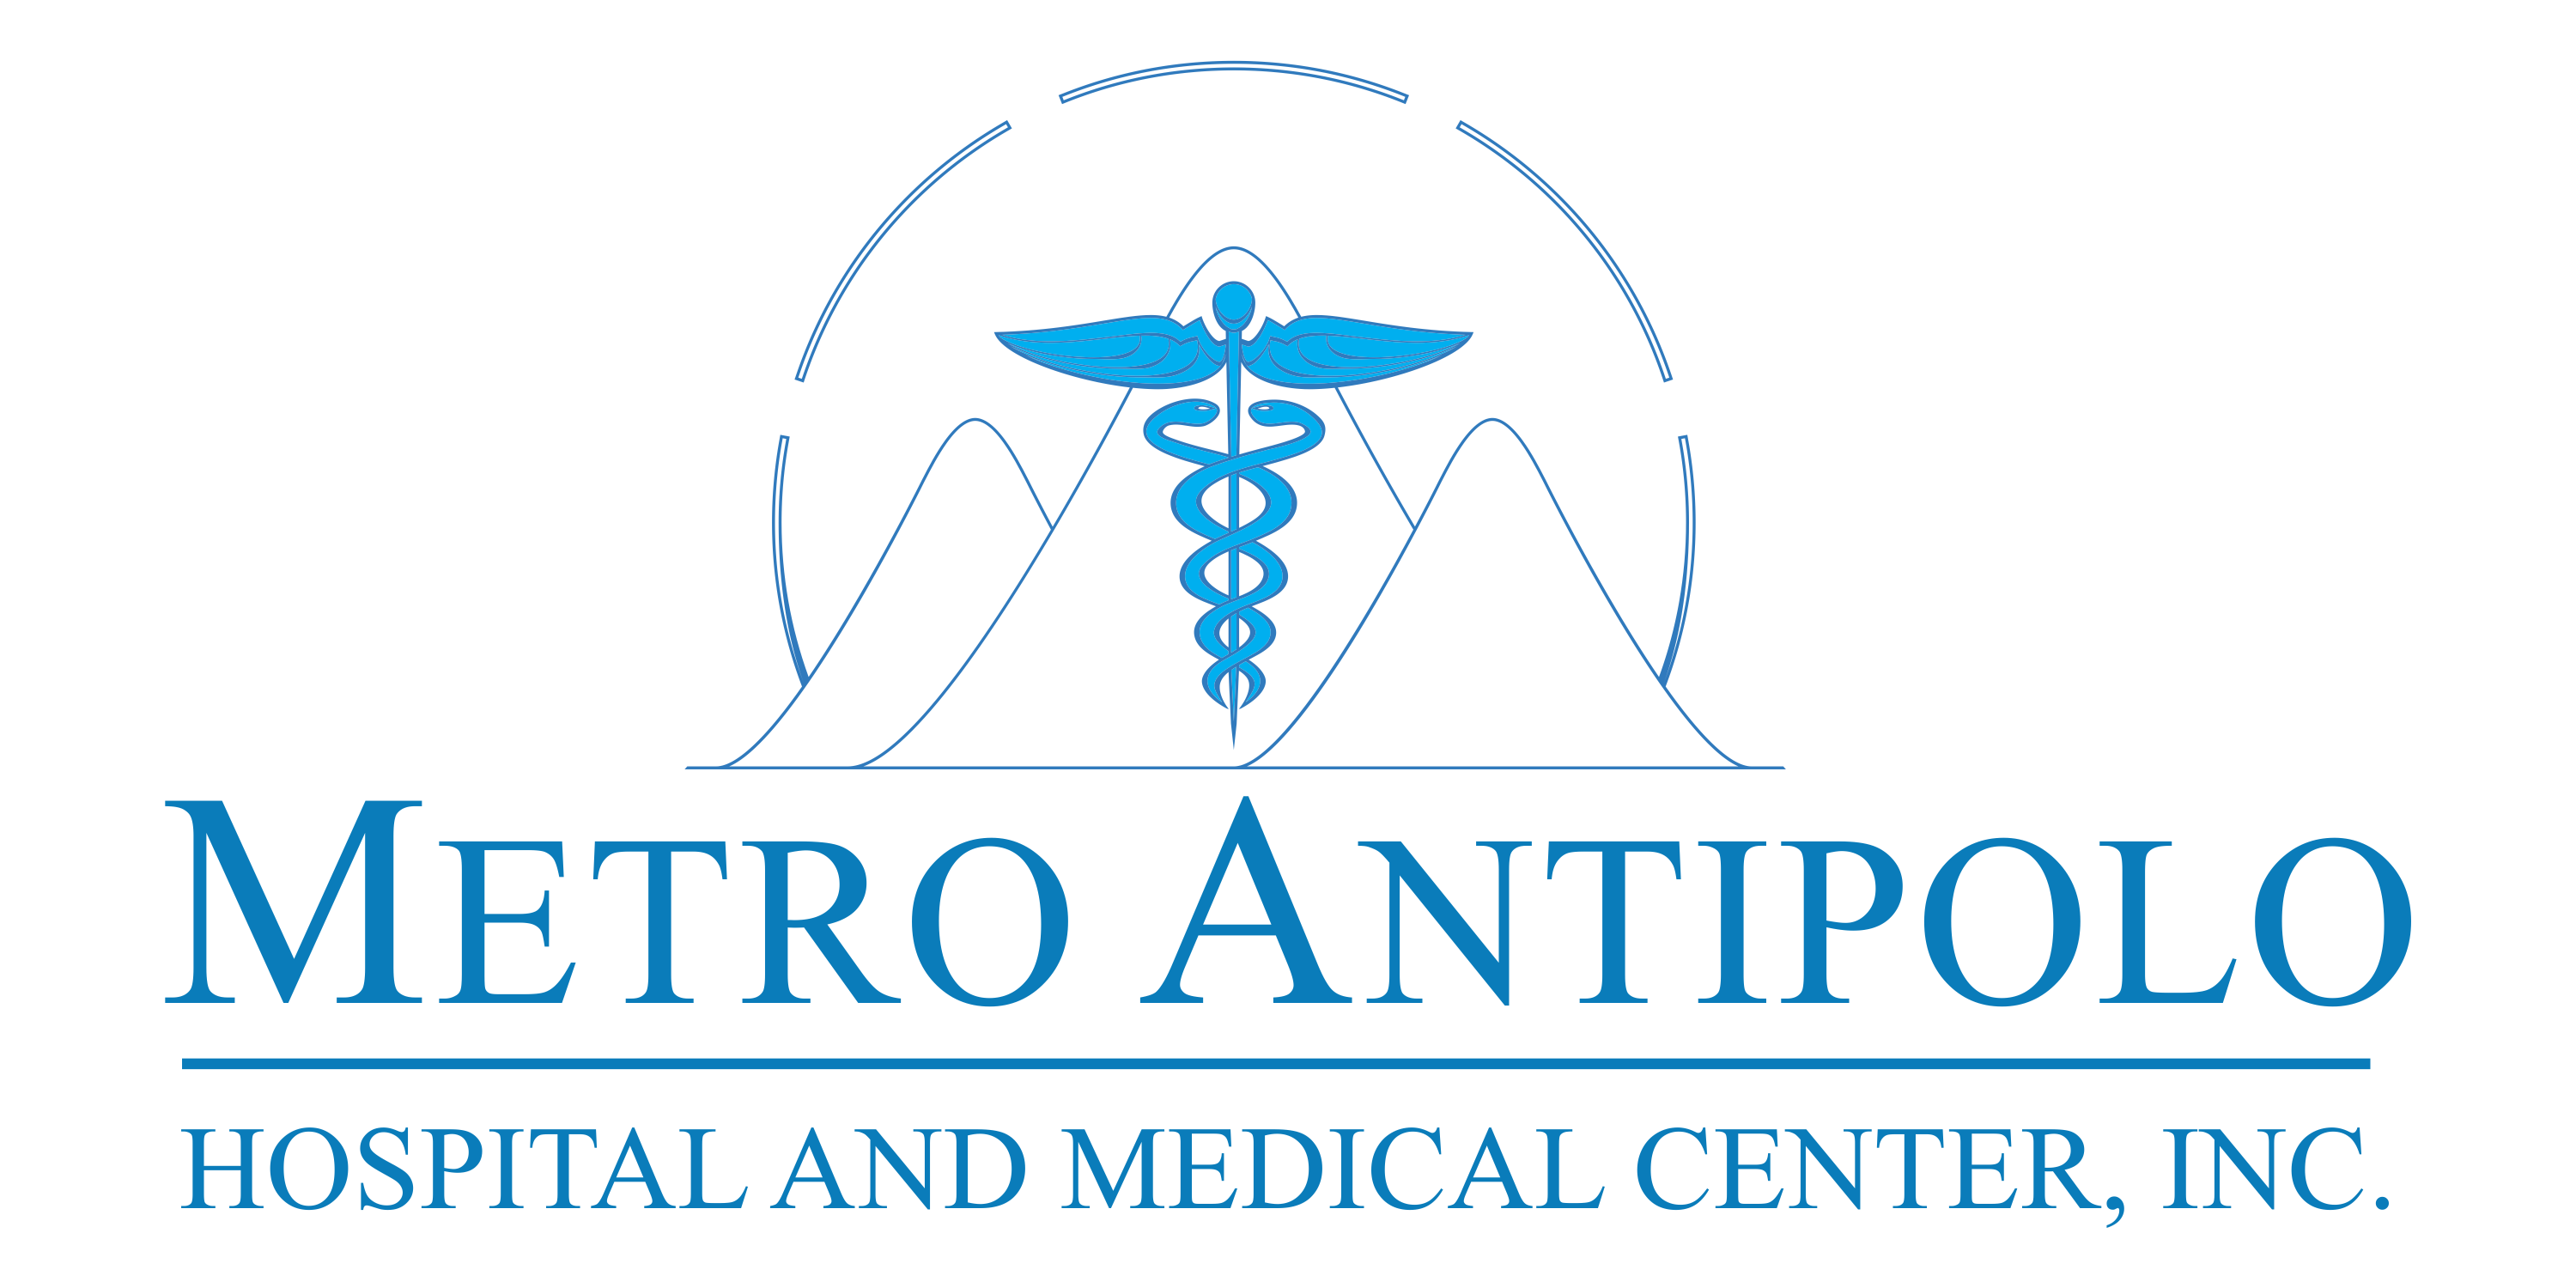 Metro Antipolo Hospital and Medical Center